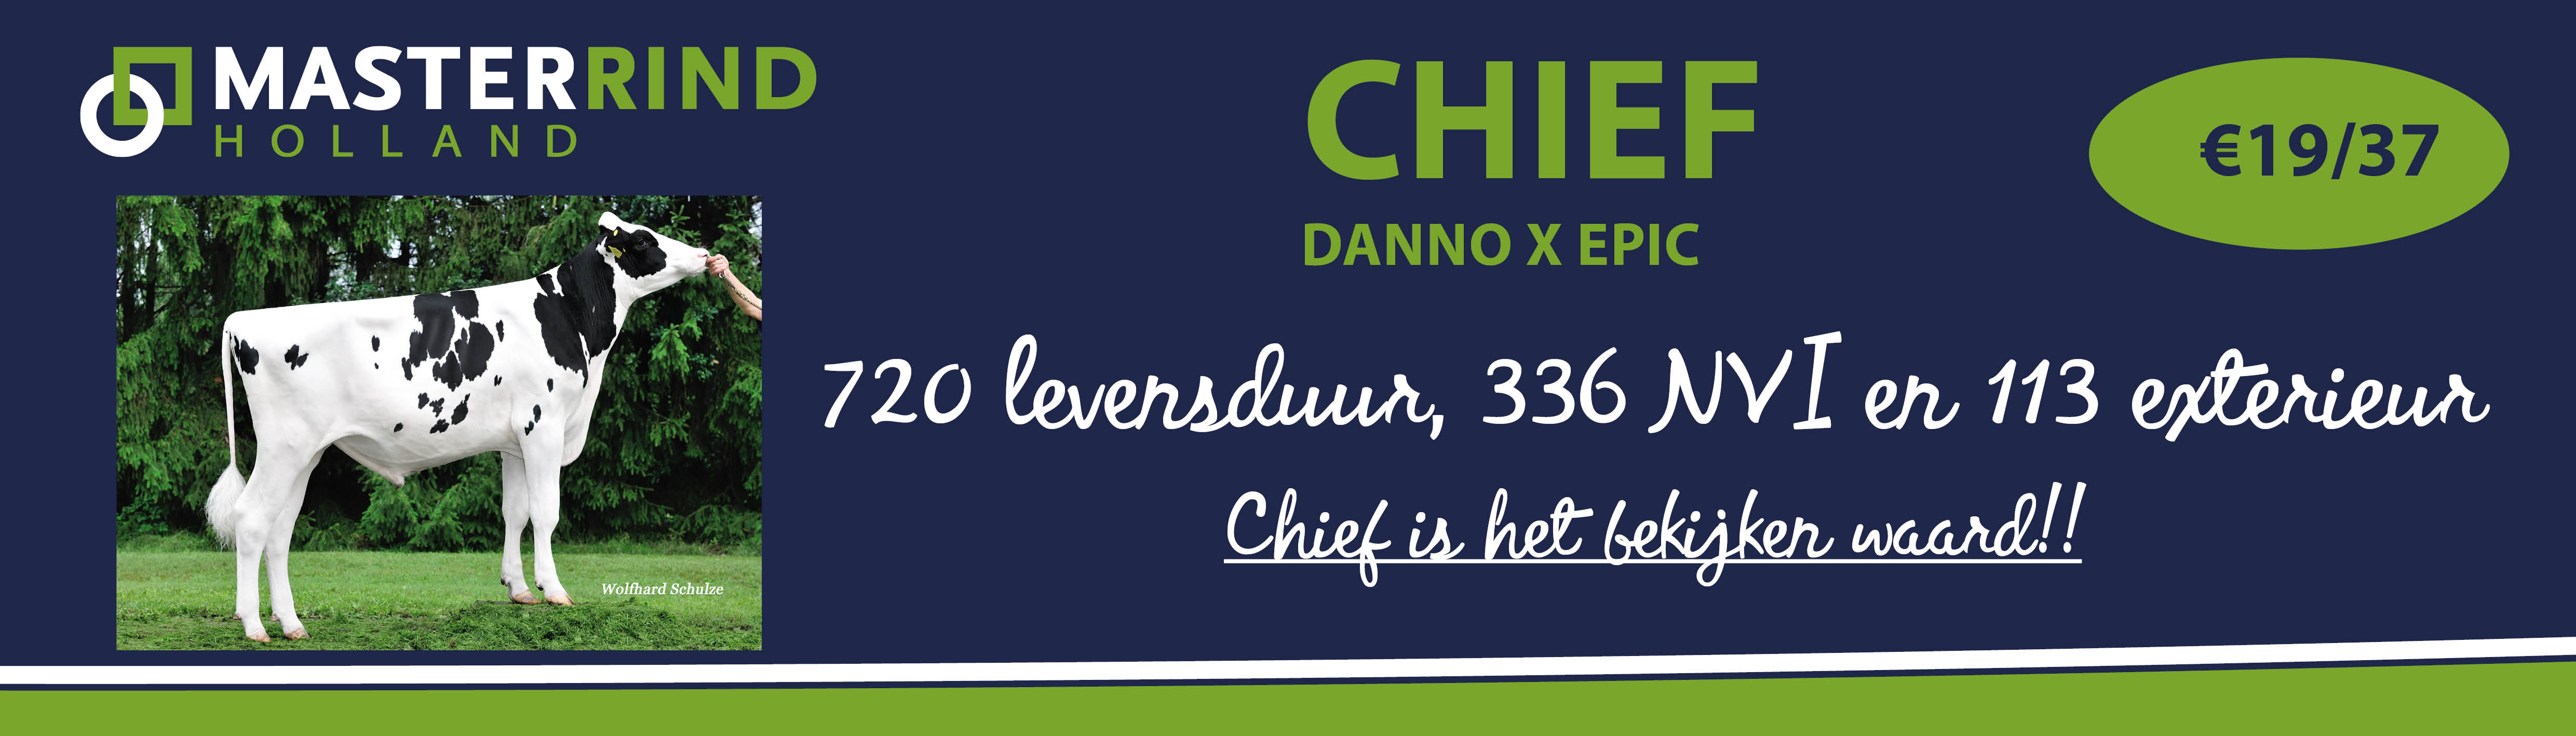 banner-Chief